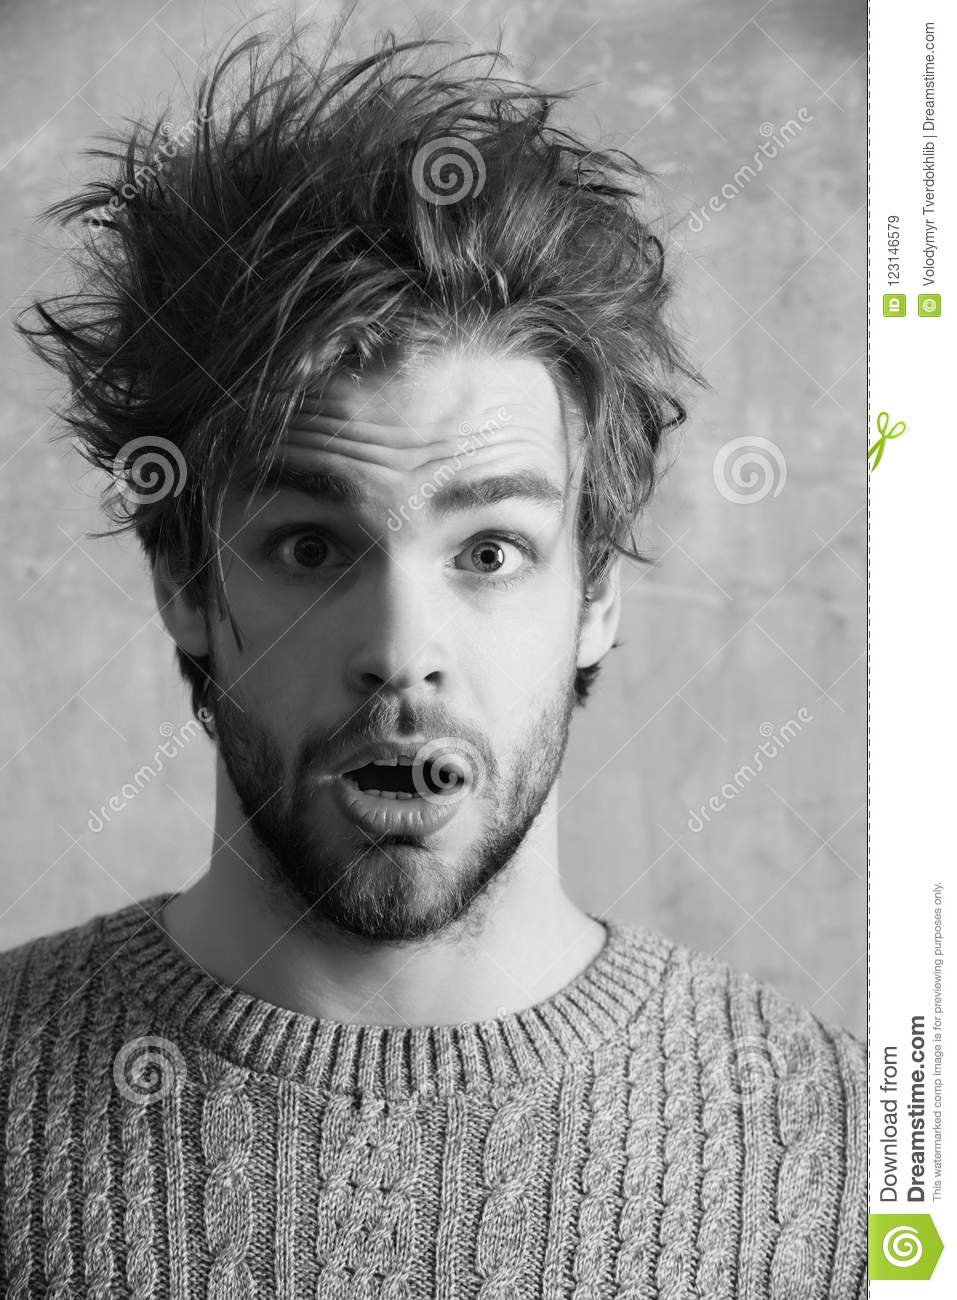 guy or handsome man with stylish haircut and beard stock image